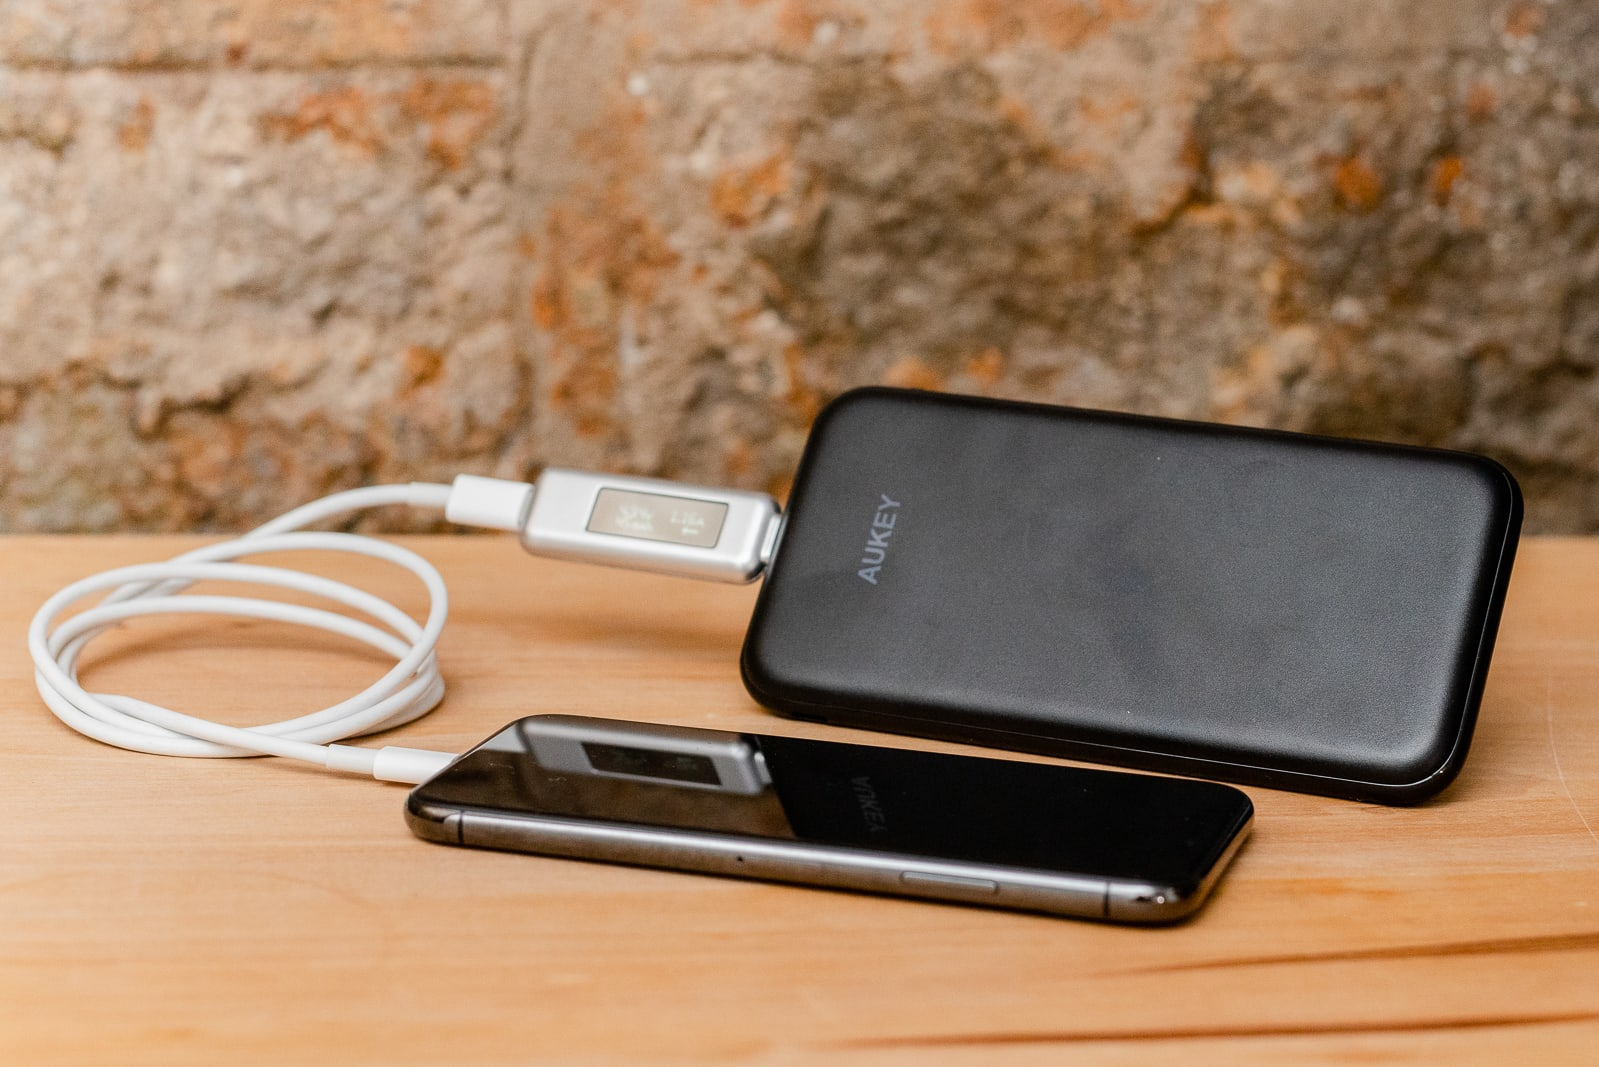 Wired fast charger